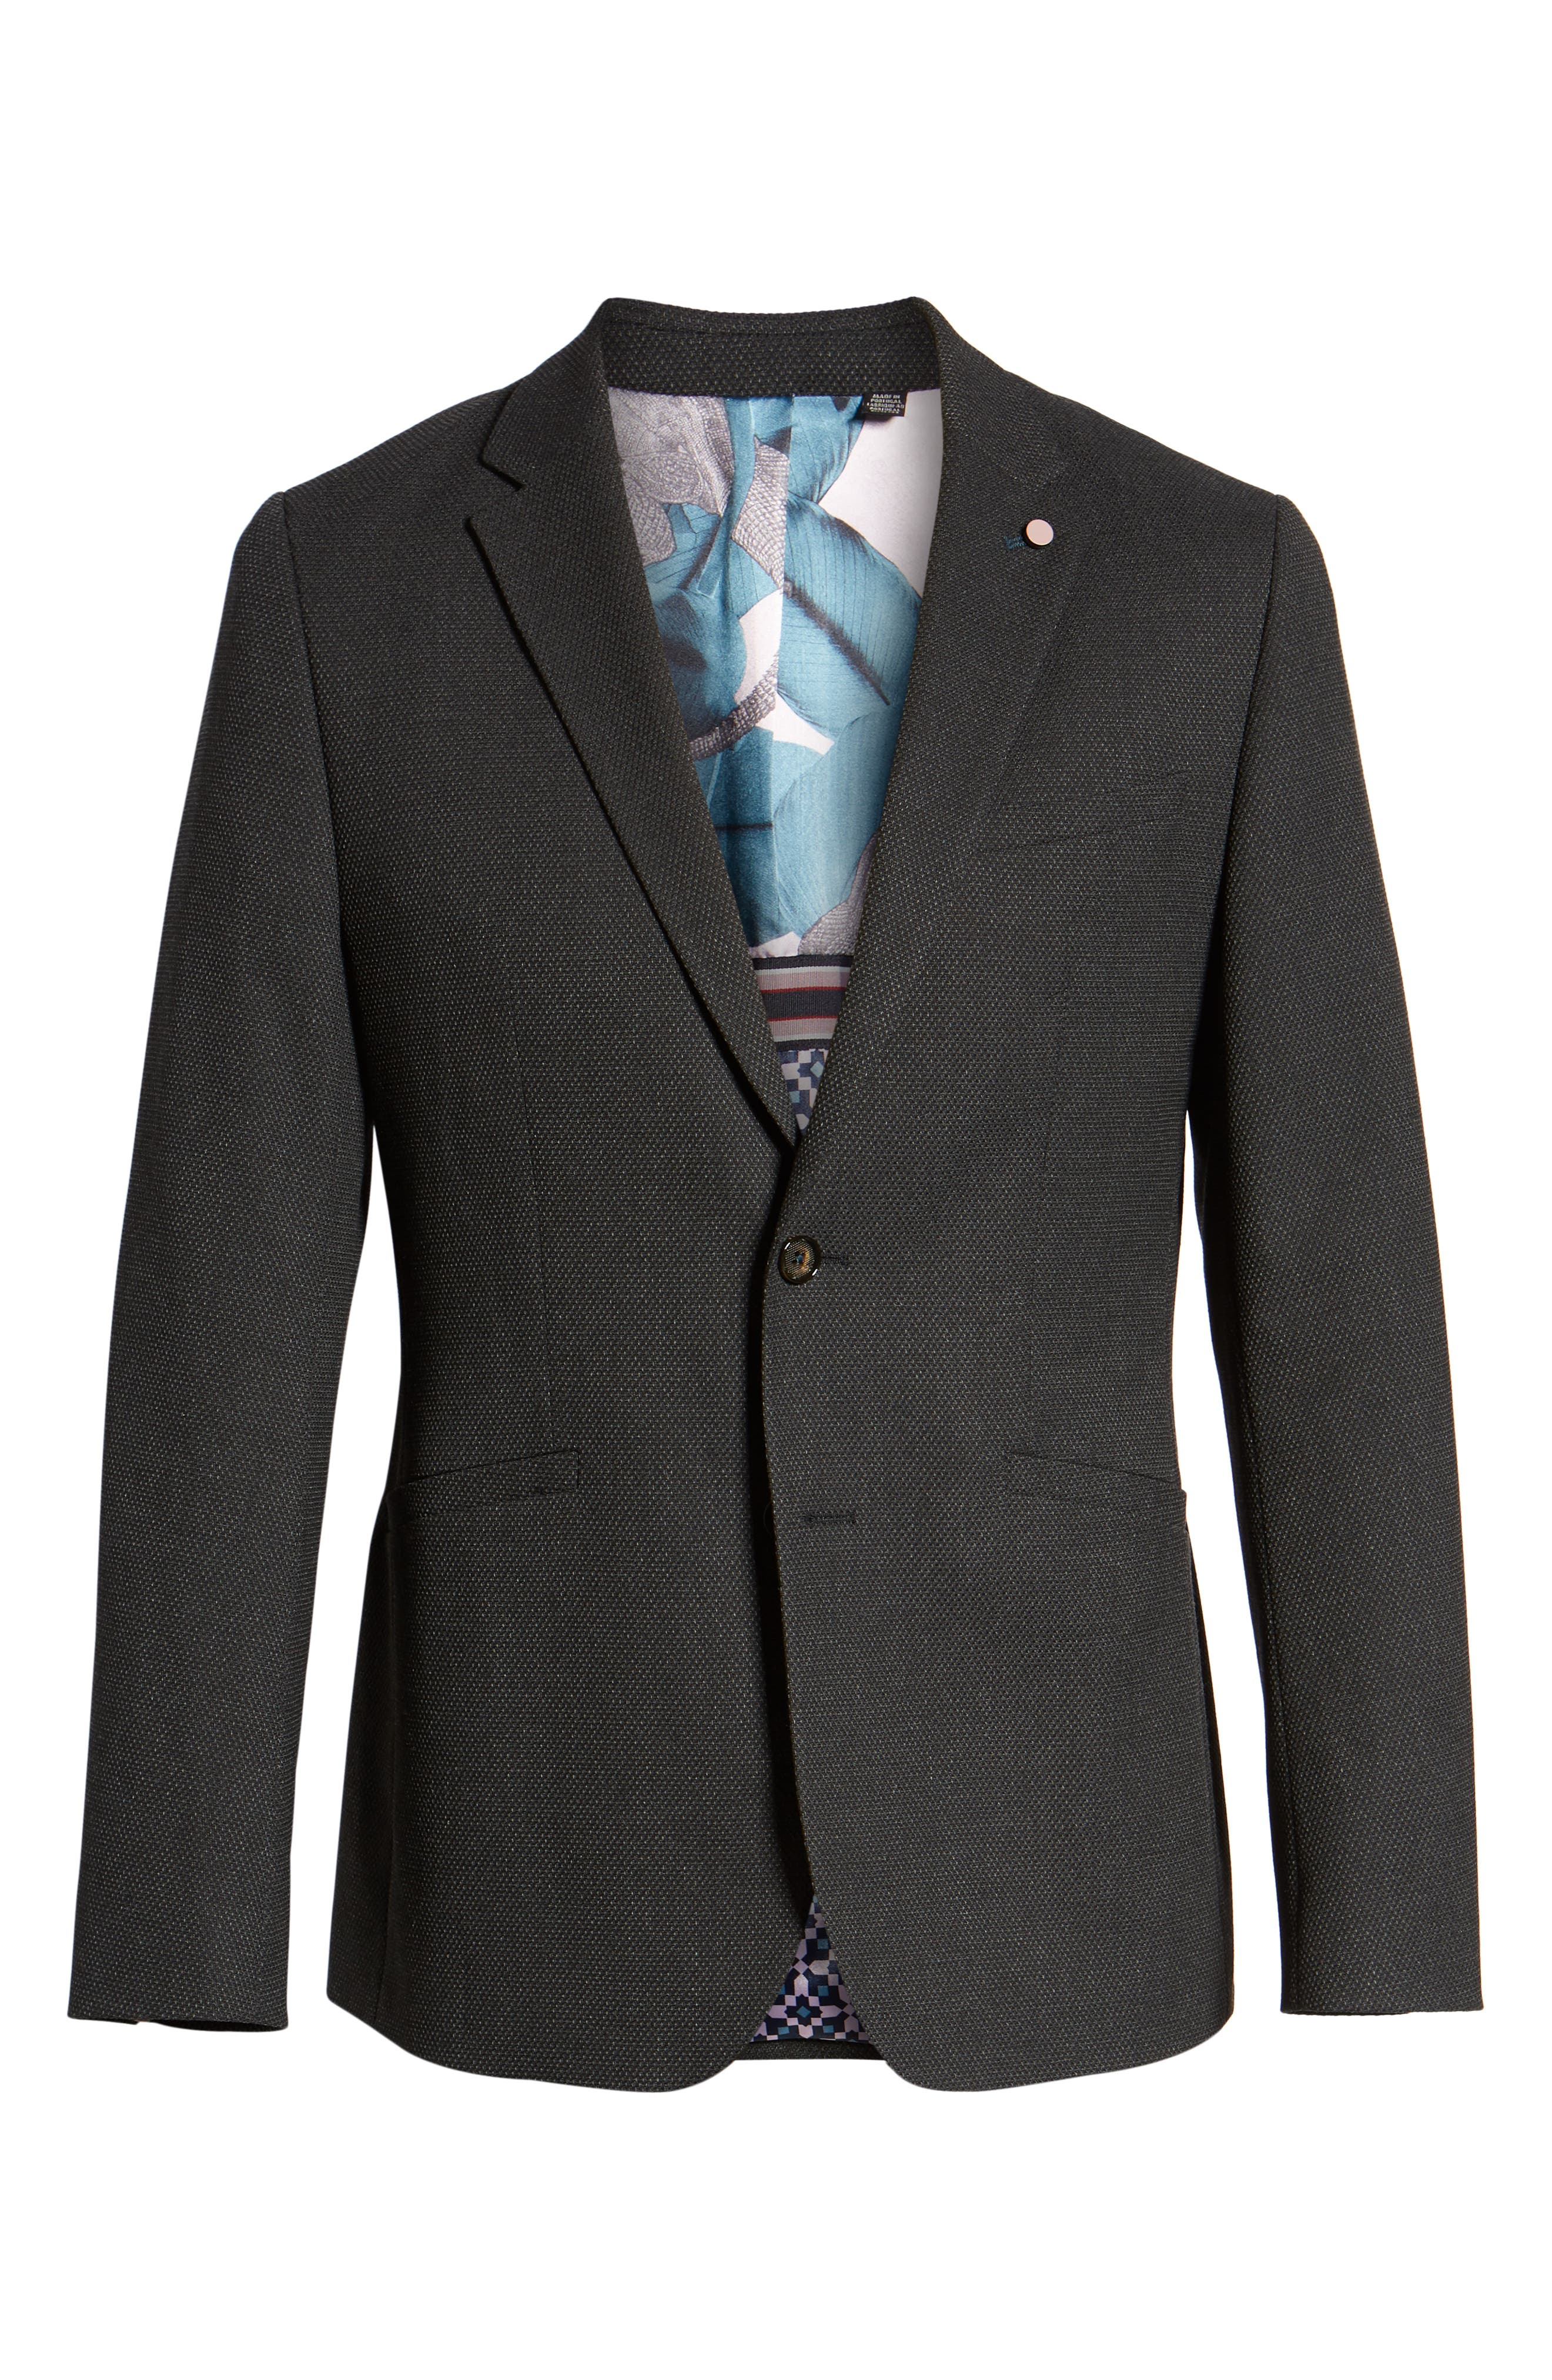 Gorka Slim Fit Suit Jacket,                             Alternate thumbnail 5, color,                             CHARCOAL